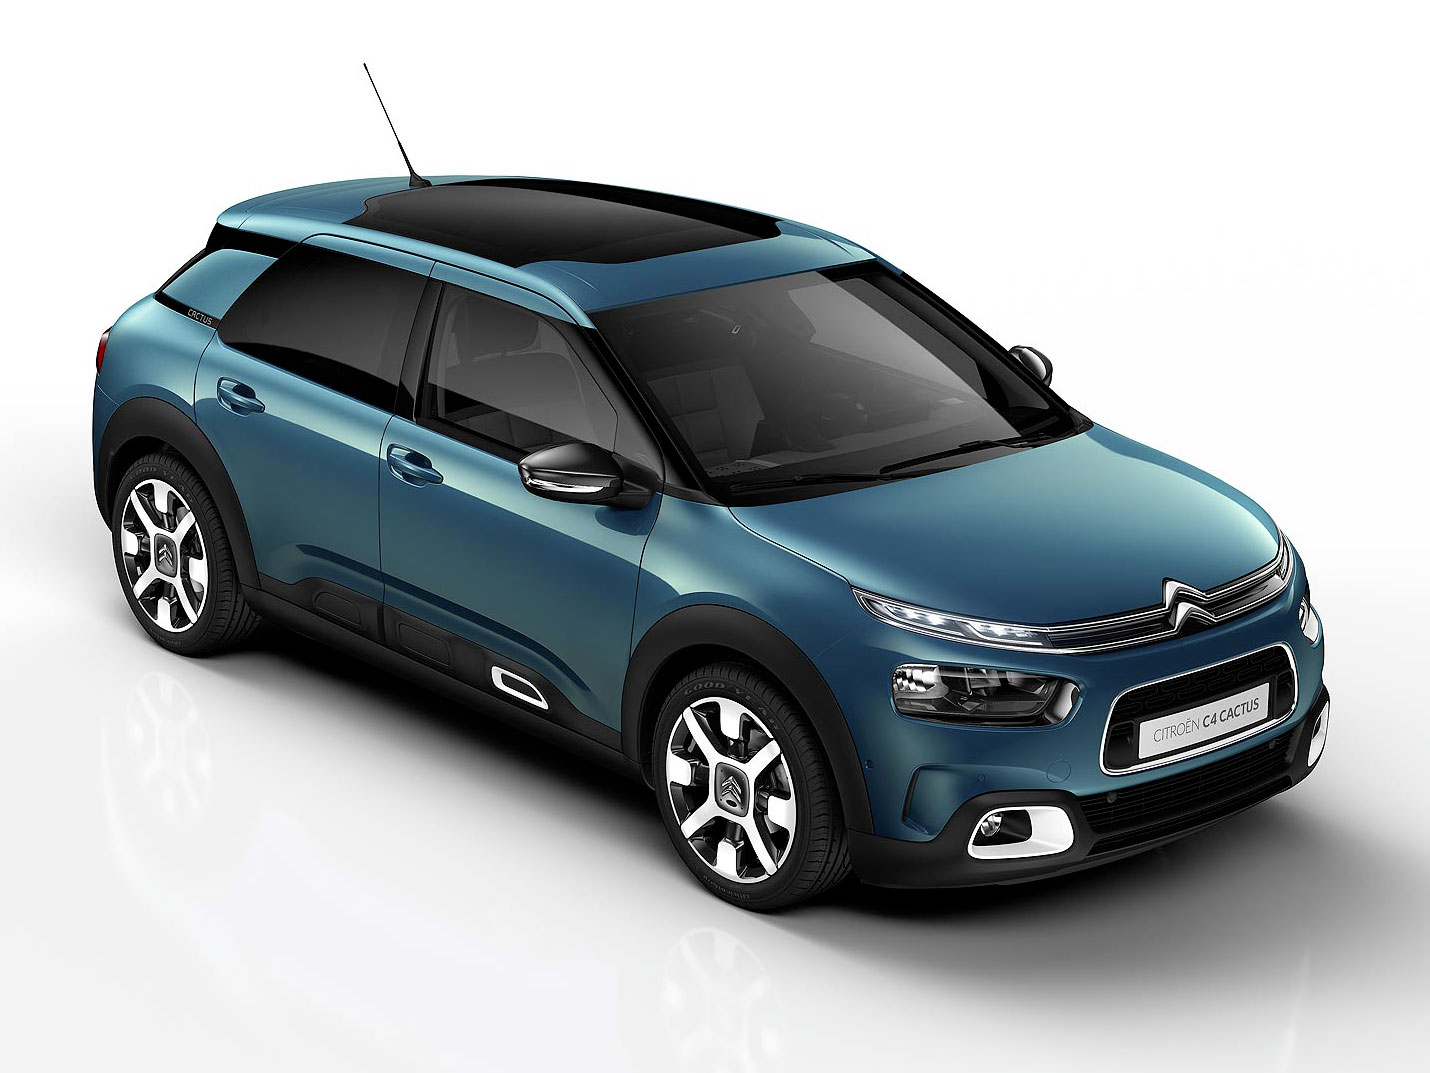 mandataire citroen c4 cactus nouveau c4 cactus 1 2. Black Bedroom Furniture Sets. Home Design Ideas